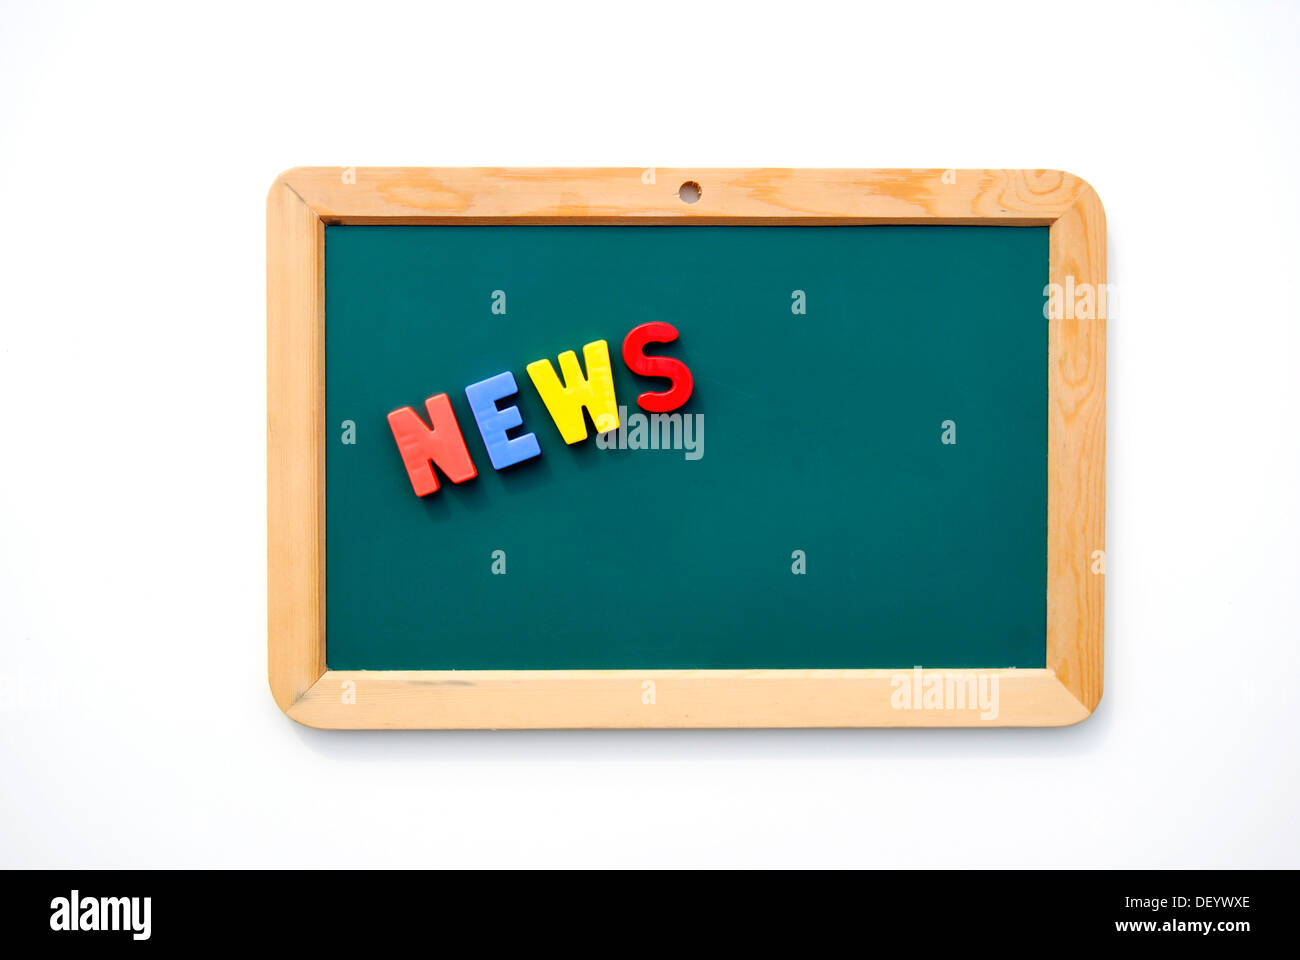 News, written with colourful magnetic letters on a child's blackboard - Stock Image